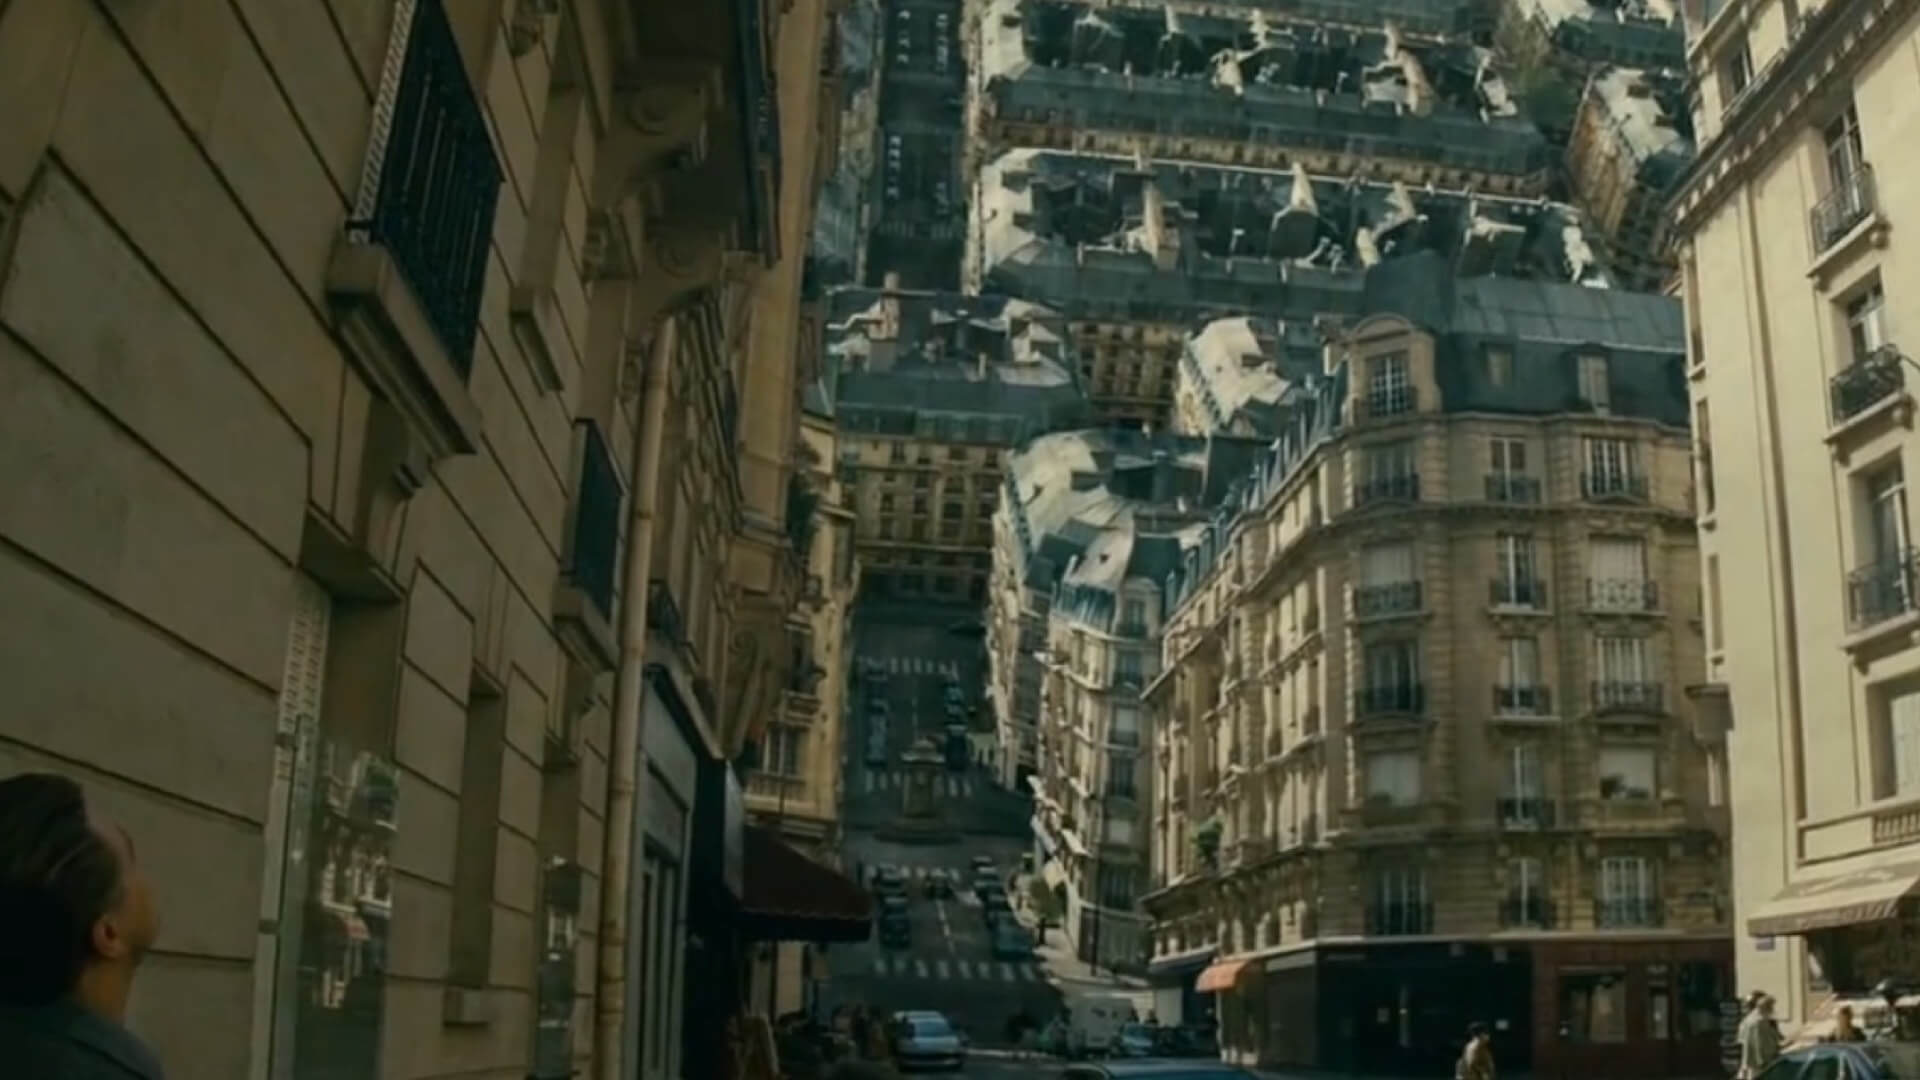 How to Design Shot Lists Like Christopher Nolan - Inverted City Inception - StudioBinder